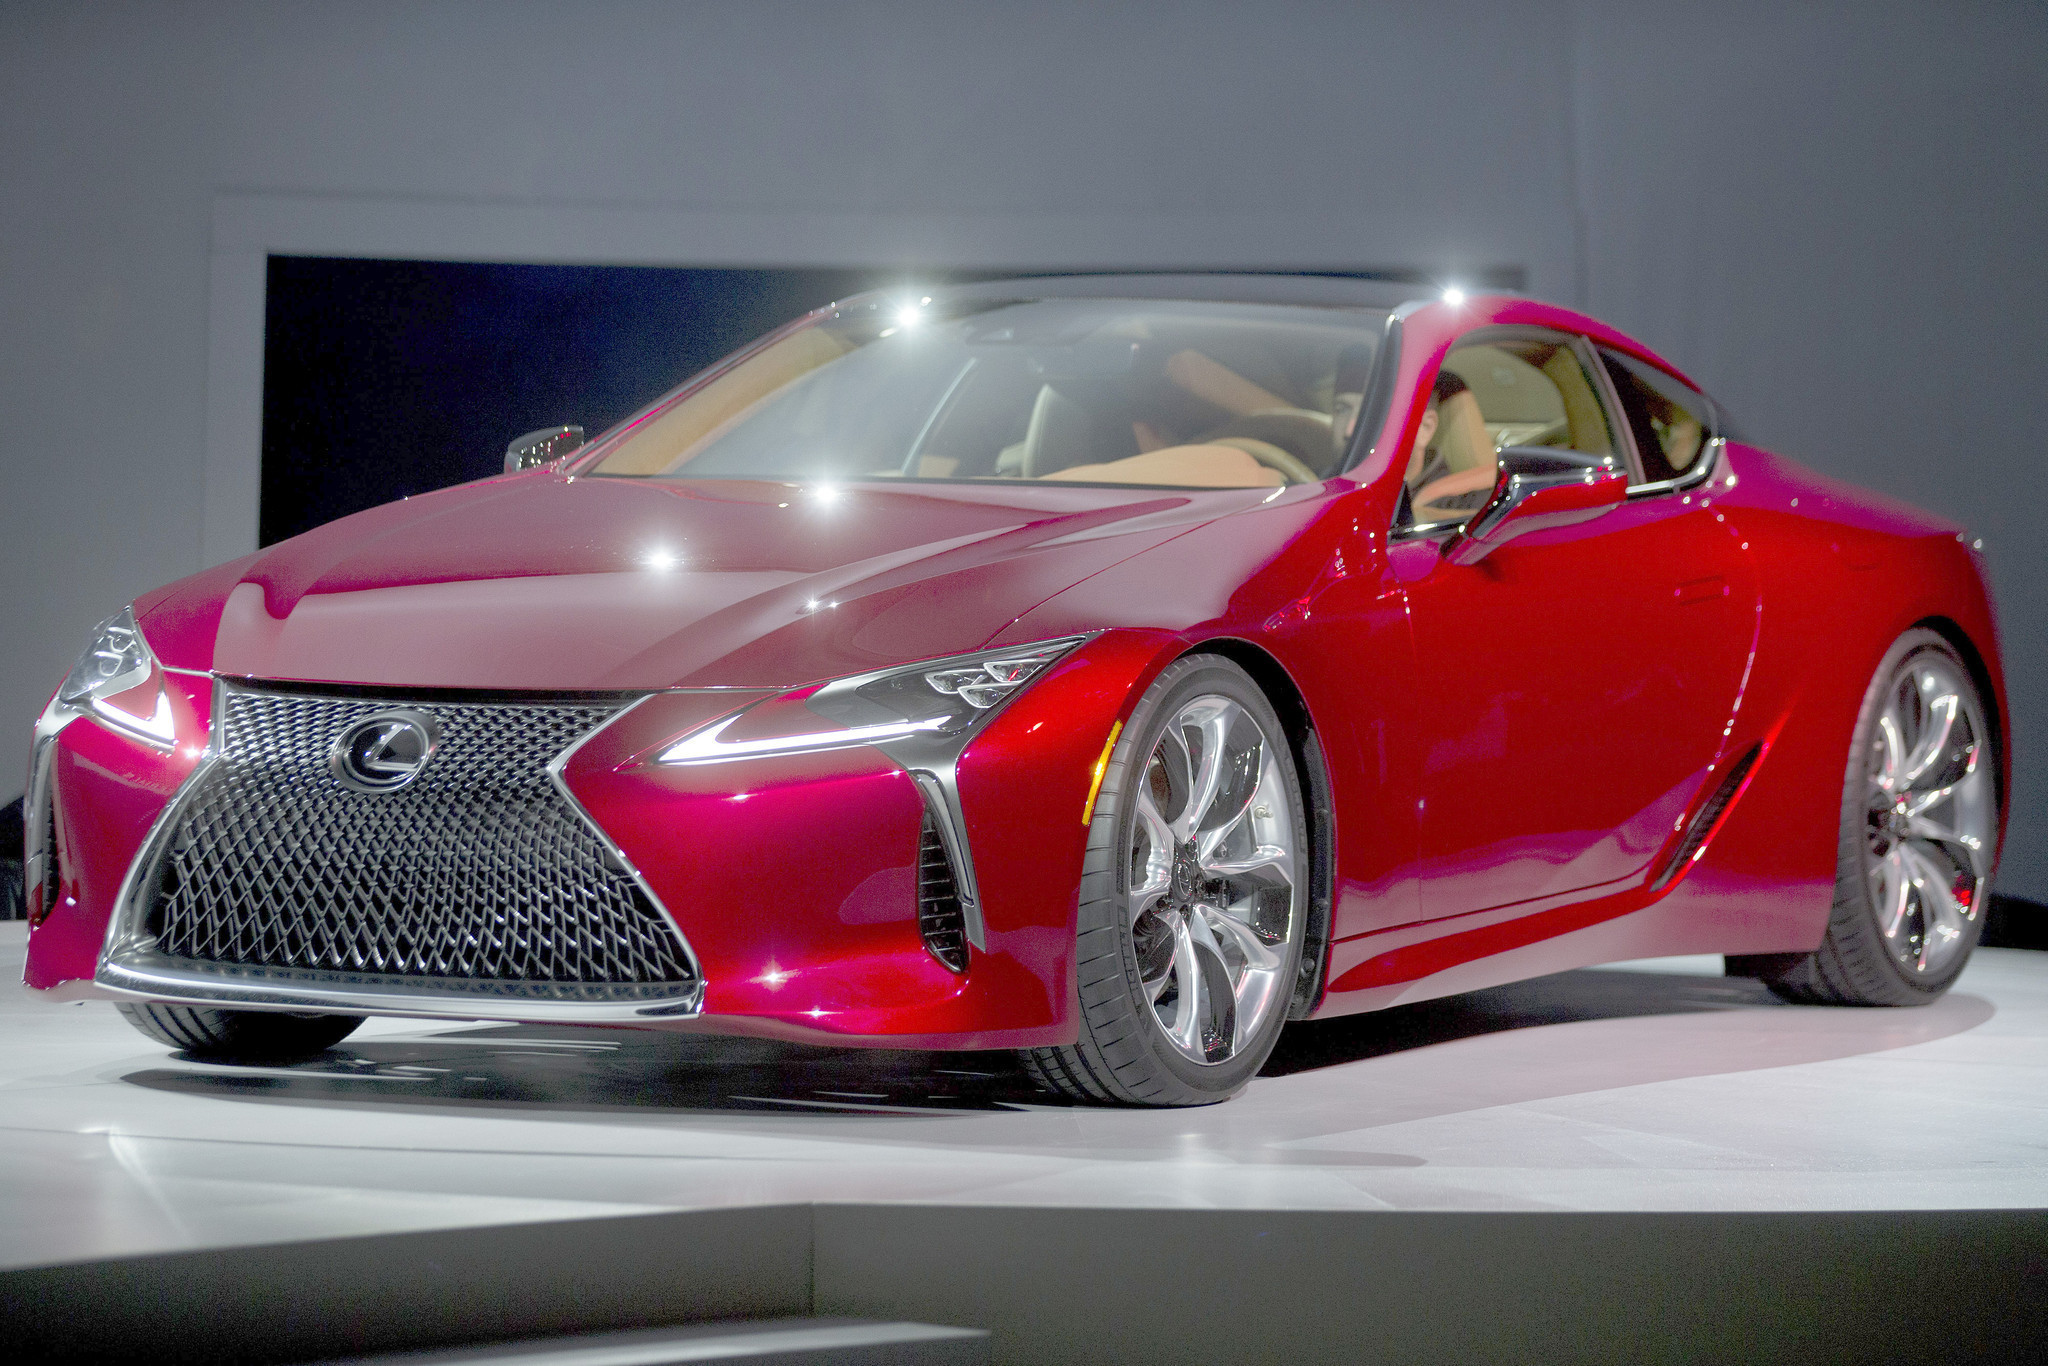 lexus unveils high powered lc 500 sports coupe chicago tribune. Black Bedroom Furniture Sets. Home Design Ideas